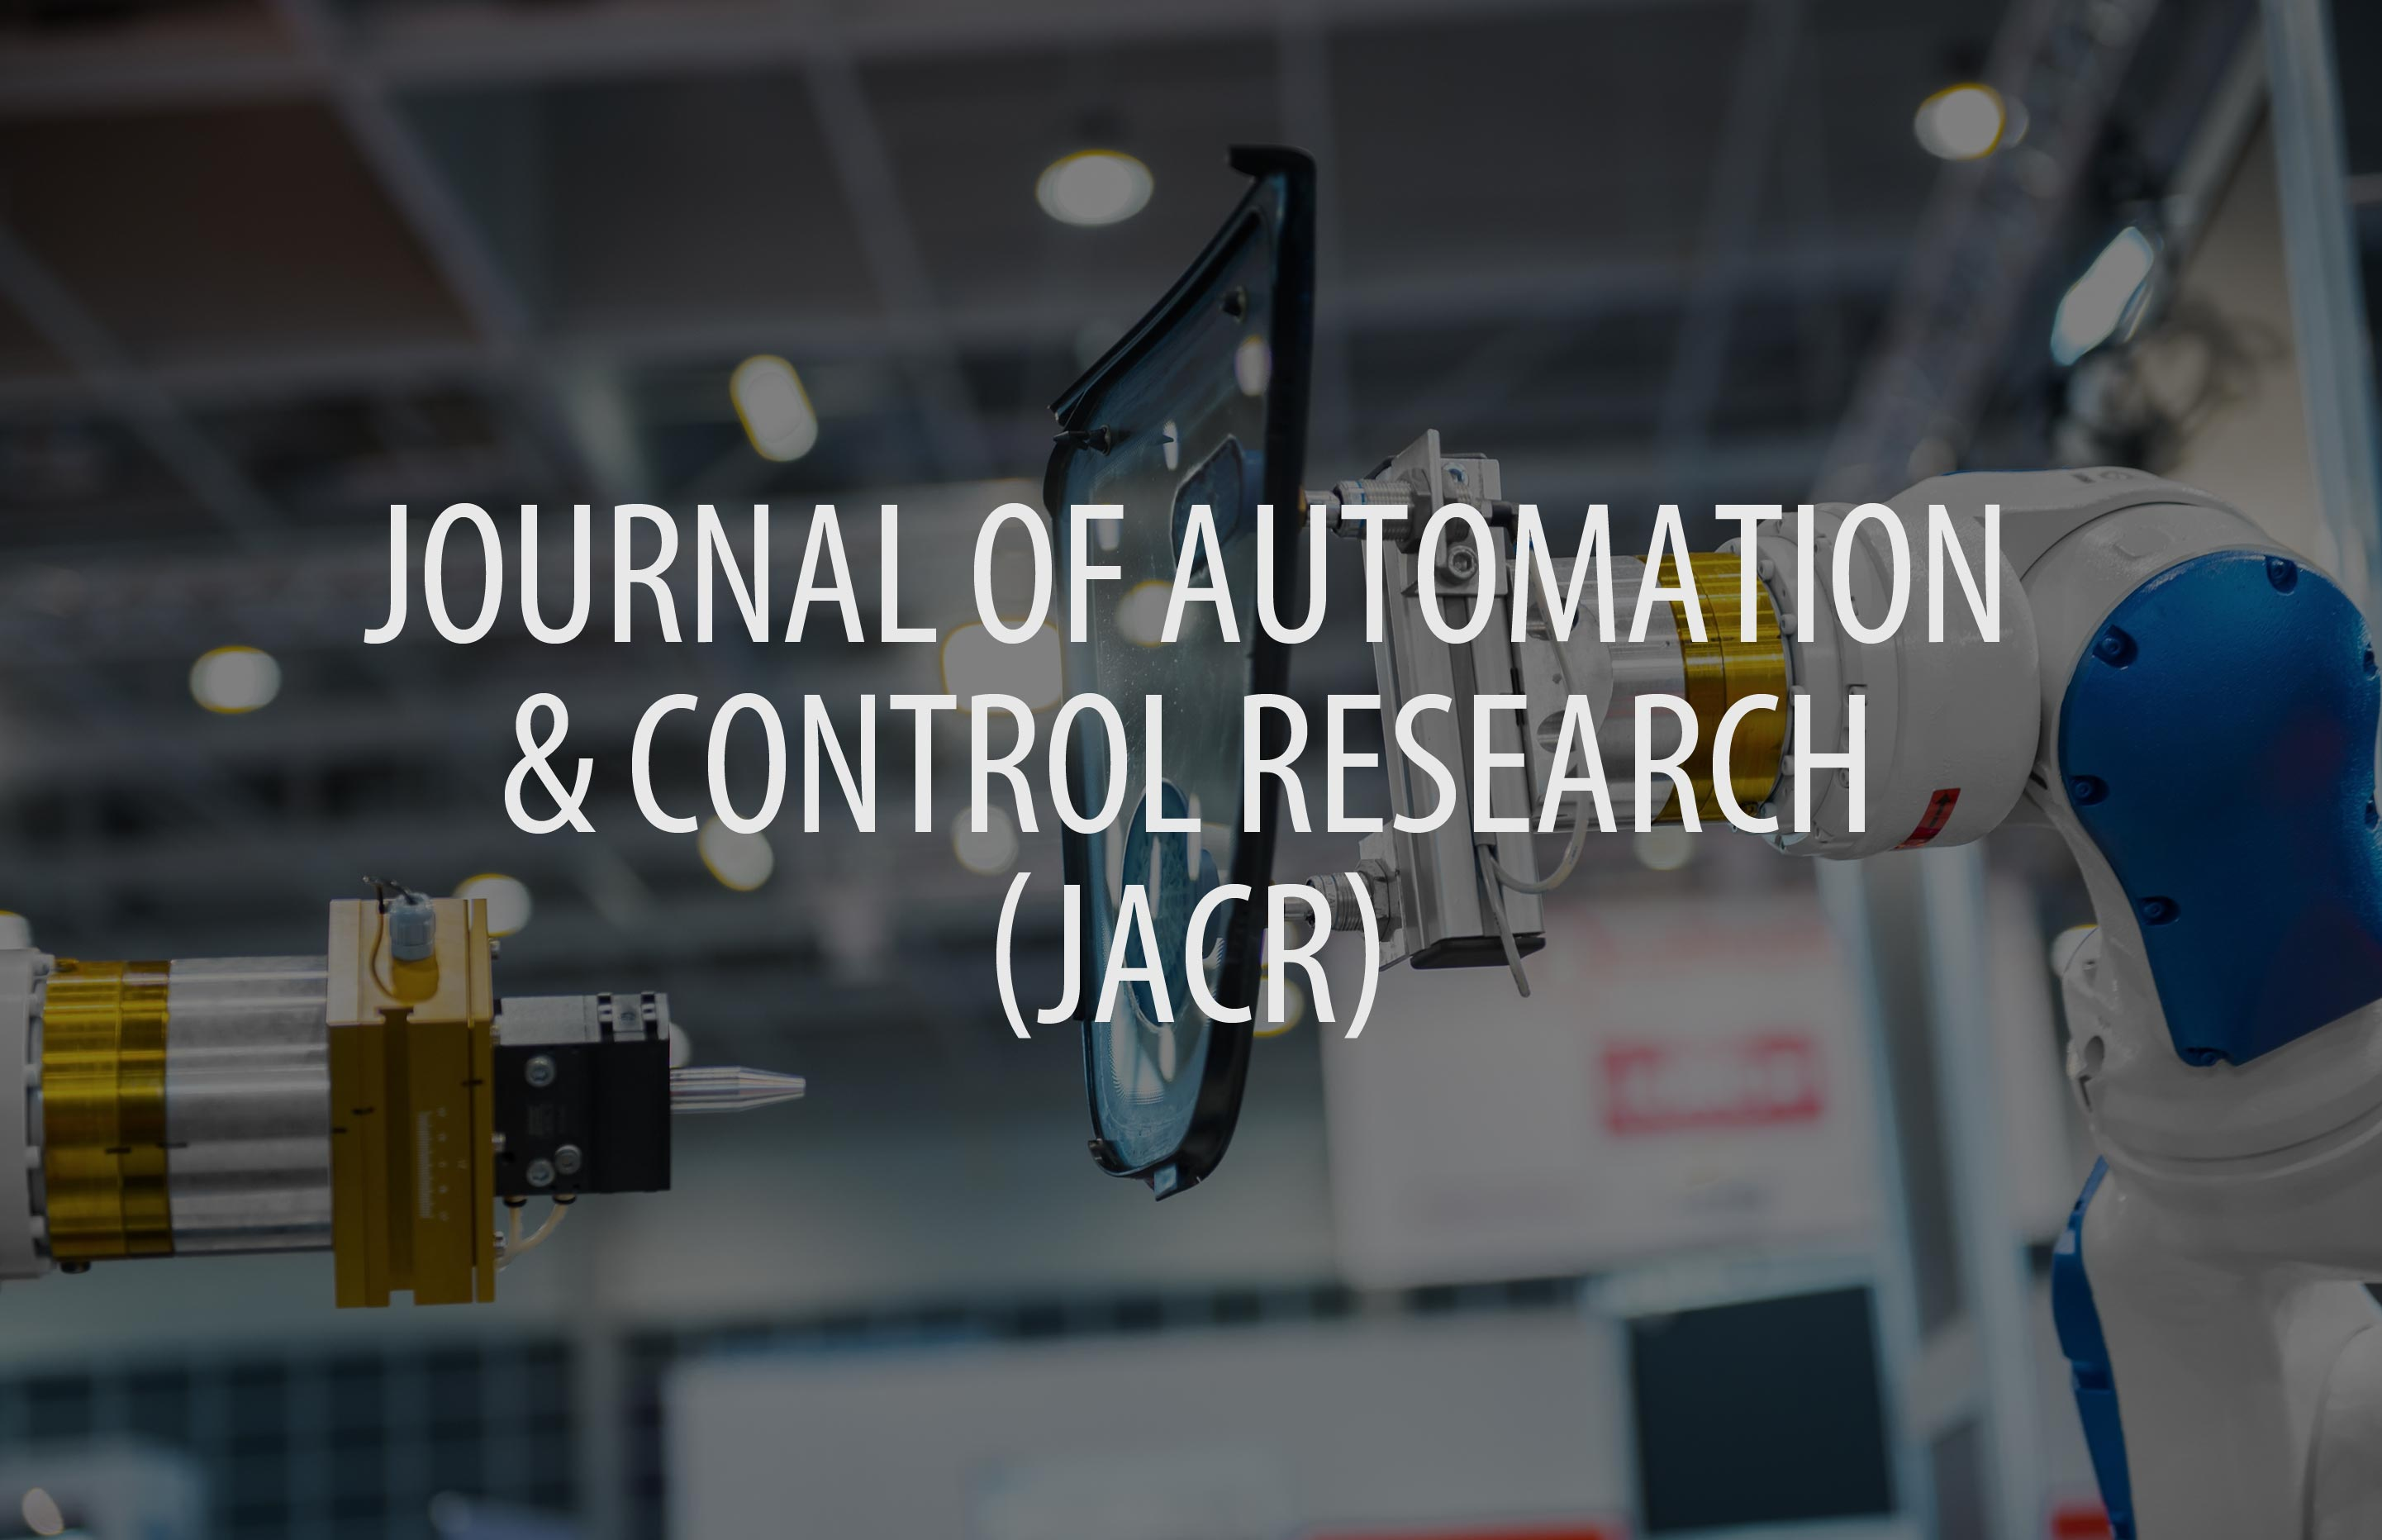 Journal of Automation and Control Research (JACR)